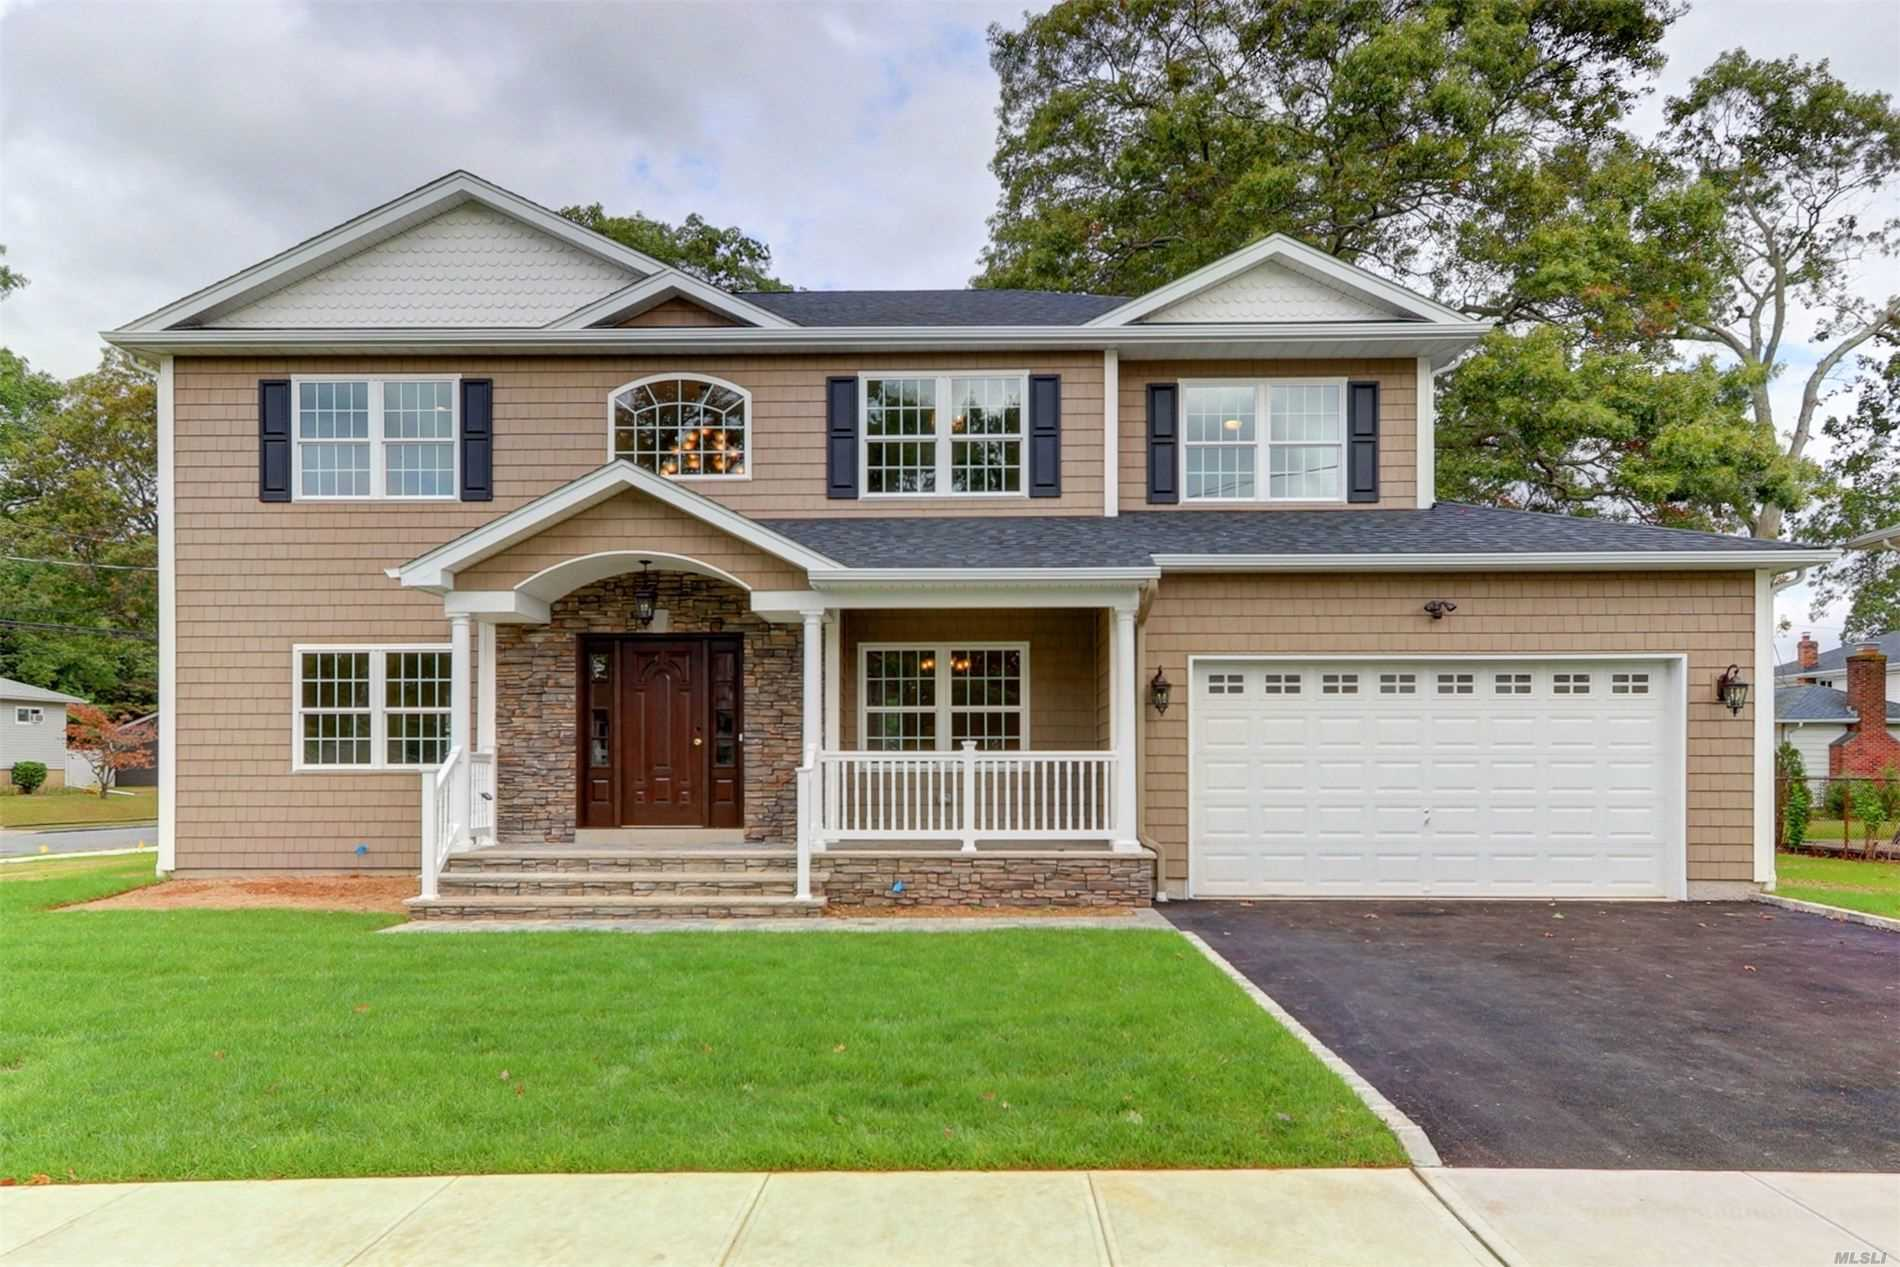 Best Priced New Construction Home in SD #23...Priced To Sell! Custom Colonial in Zone X..No Flood Insurance Needed..Beautiful Oversized Property...Front Porch...Designer Kitchen/Granite/Center Island...Crown and wIndow pane Molding Throughout...HW Floors...CAC...IGS...Fully Loaded! Pictures Are For Workmanship Only!